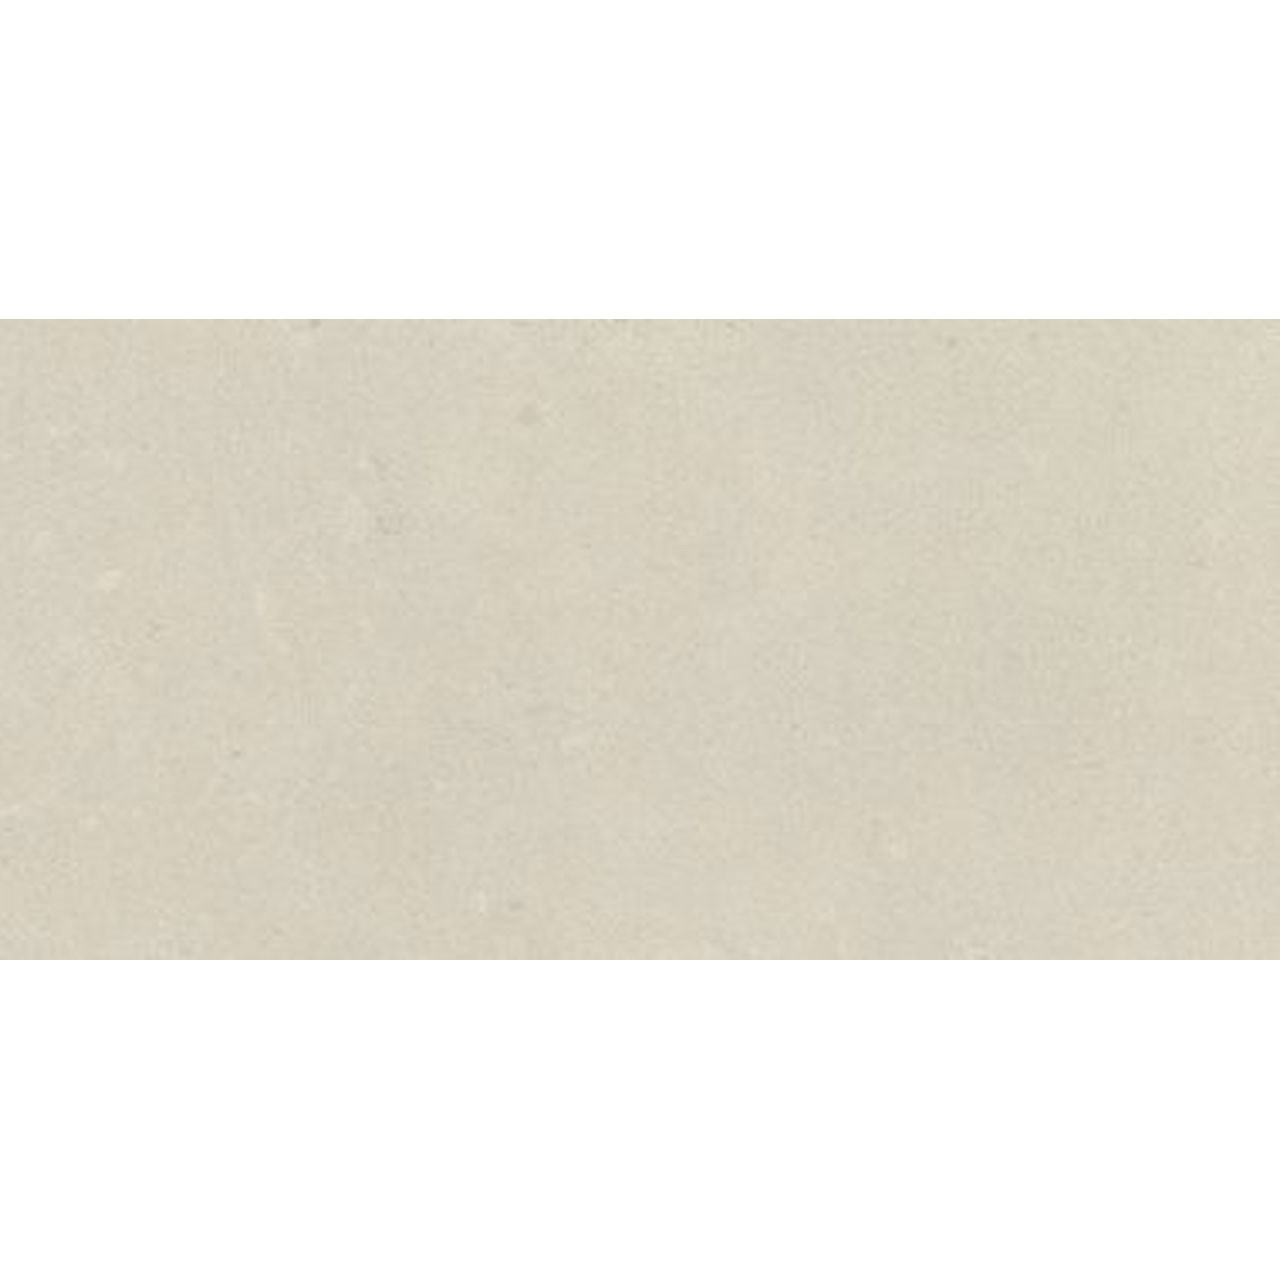 Surface Off White Matt 30x60 Porcelain Tile